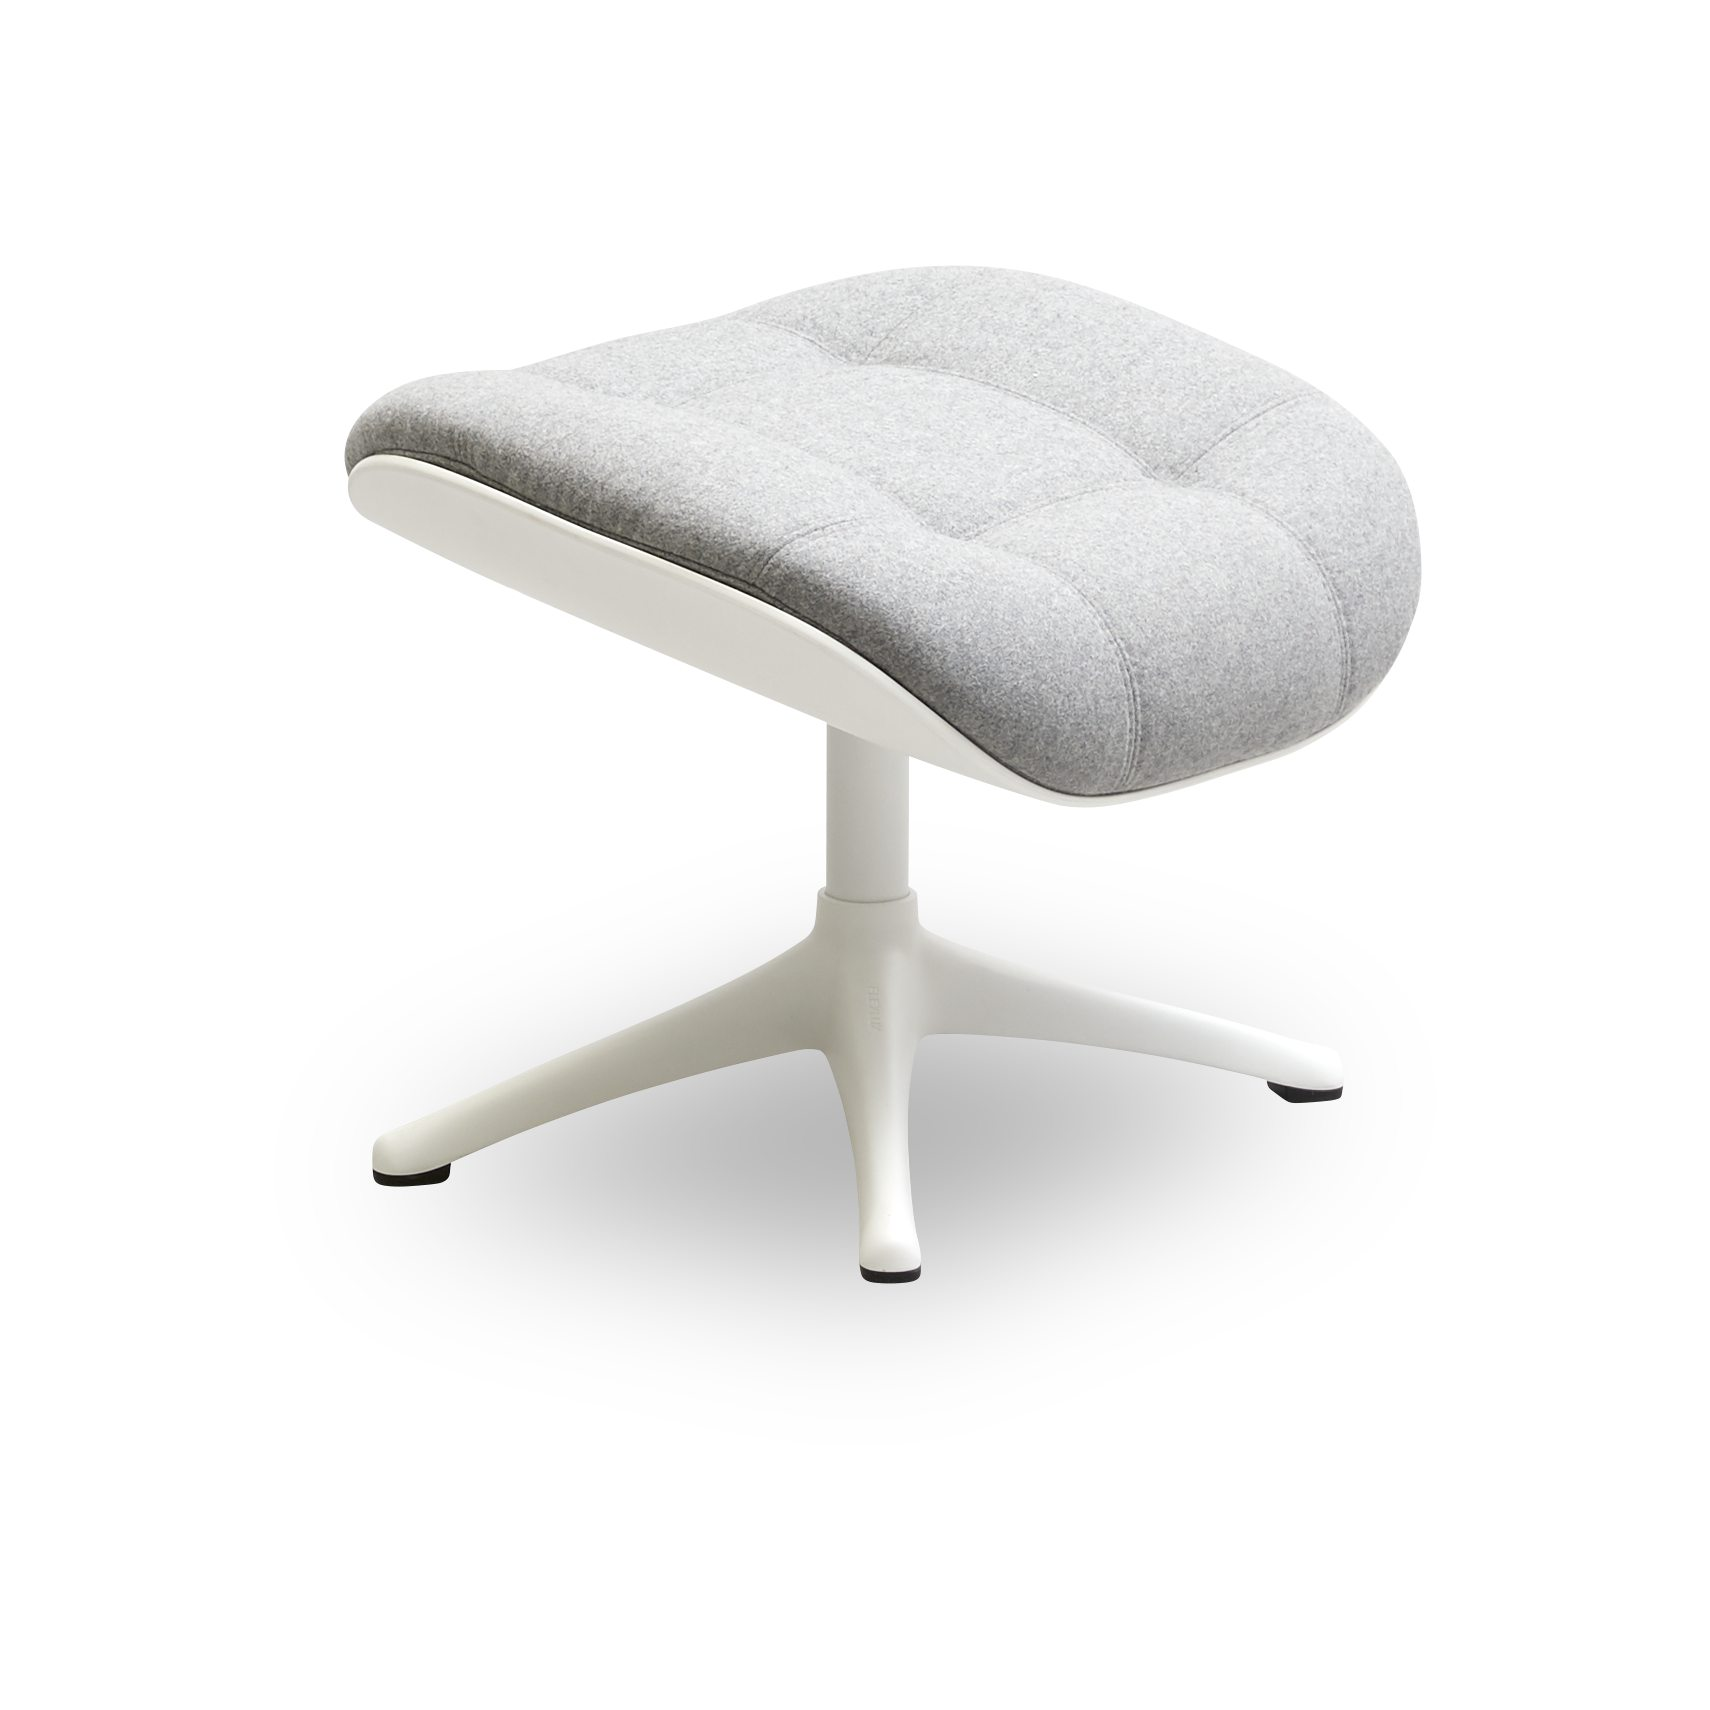 FLEXLUX® Chester Fodskammel - Lana Wool 1523 Light Grey stof, skal i Winter White komposit og sokkel i hvidlakeret aluminium